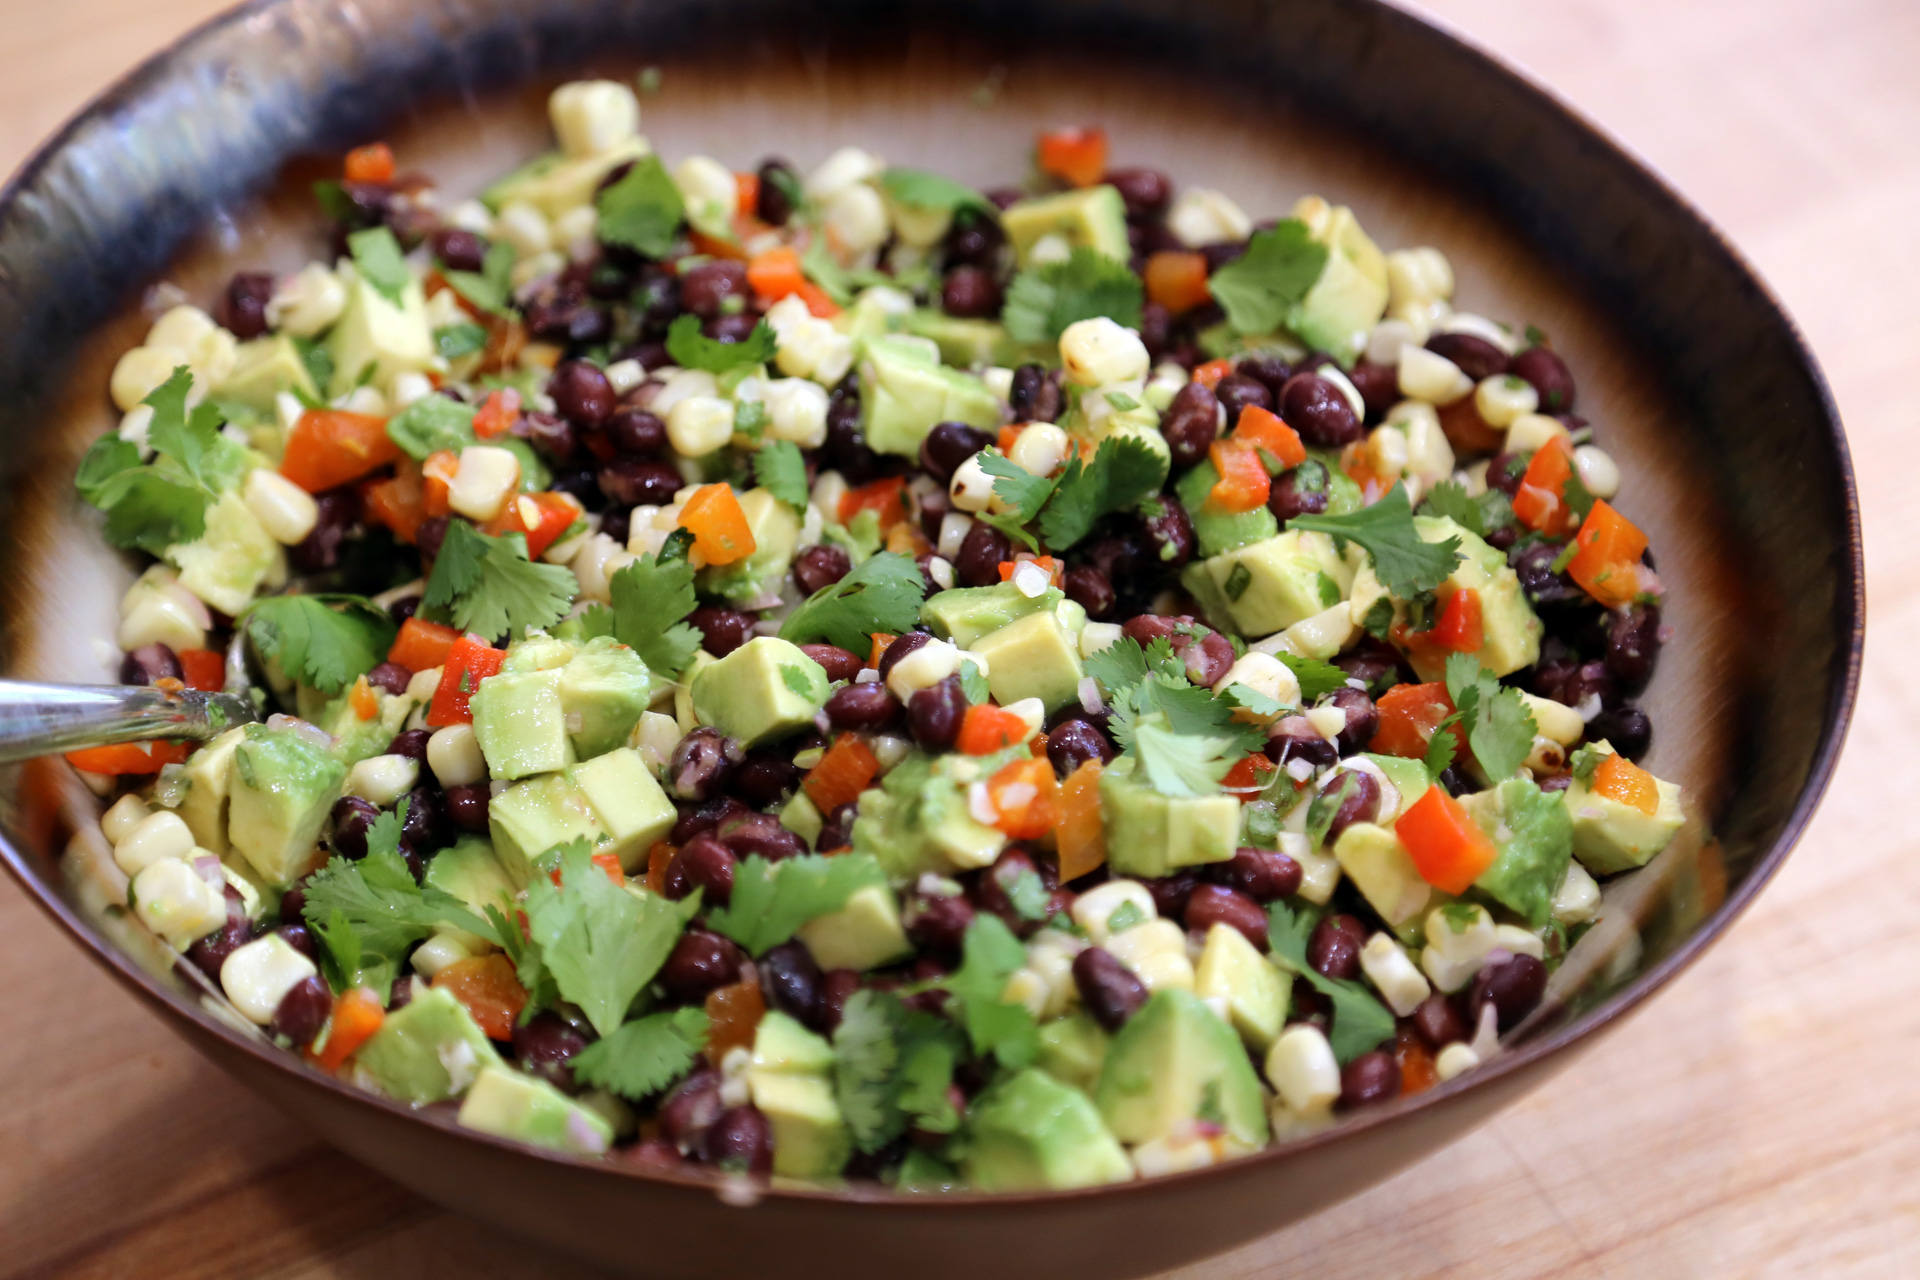 Grilled Corn, Red Pepper, Black Bean and Avocado Salad with Cilantro Vinaigrette